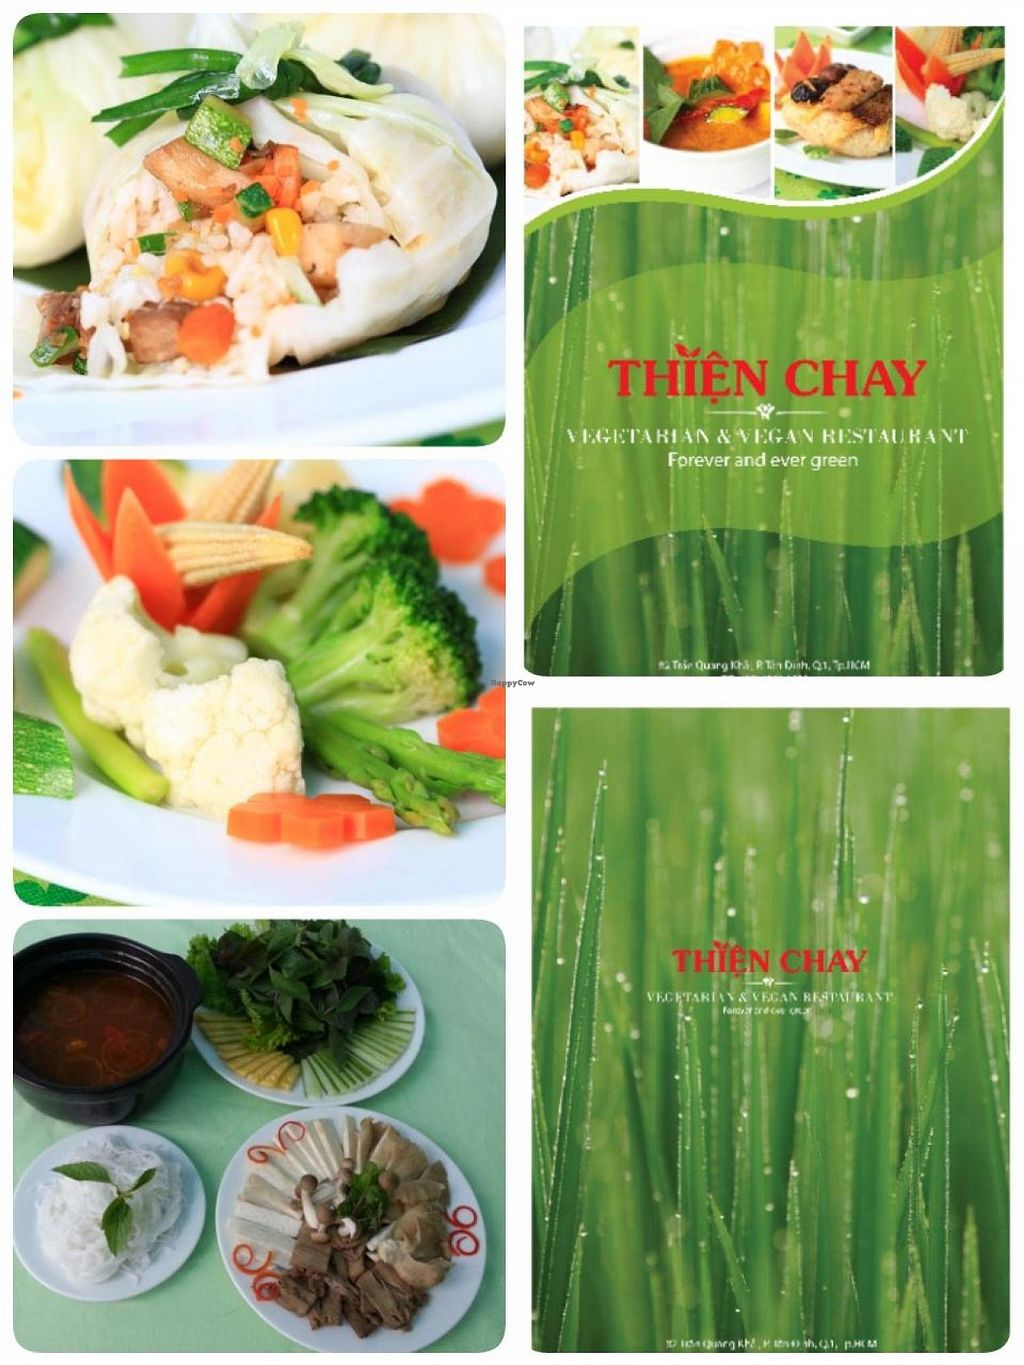 """Photo of CLOSED: Thien Chay  by <a href=""""/members/profile/HoaNguyen"""">HoaNguyen</a> <br/>delicious, special and traditional, no price wonder <br/> July 25, 2014  - <a href='/contact/abuse/image/49218/75077'>Report</a>"""